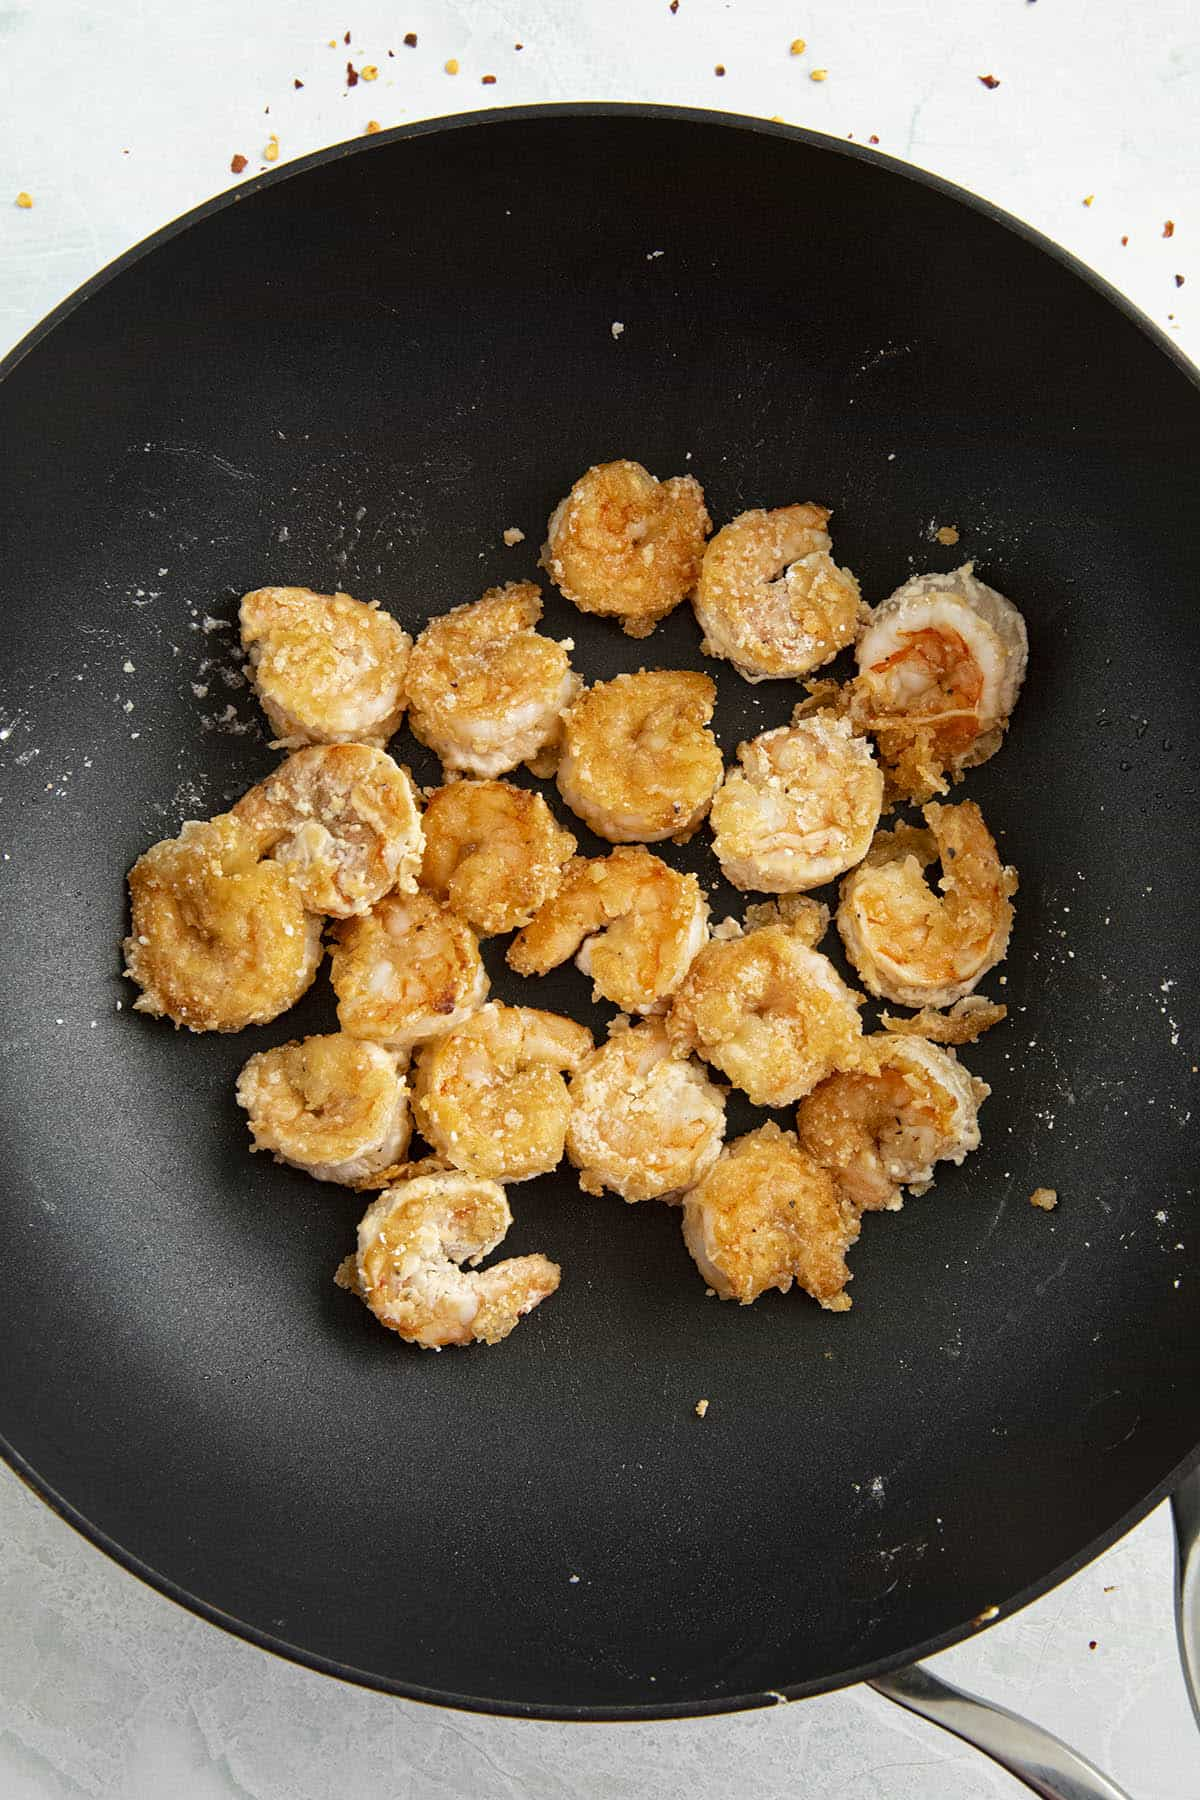 Cooking the shrimp in a hot pan